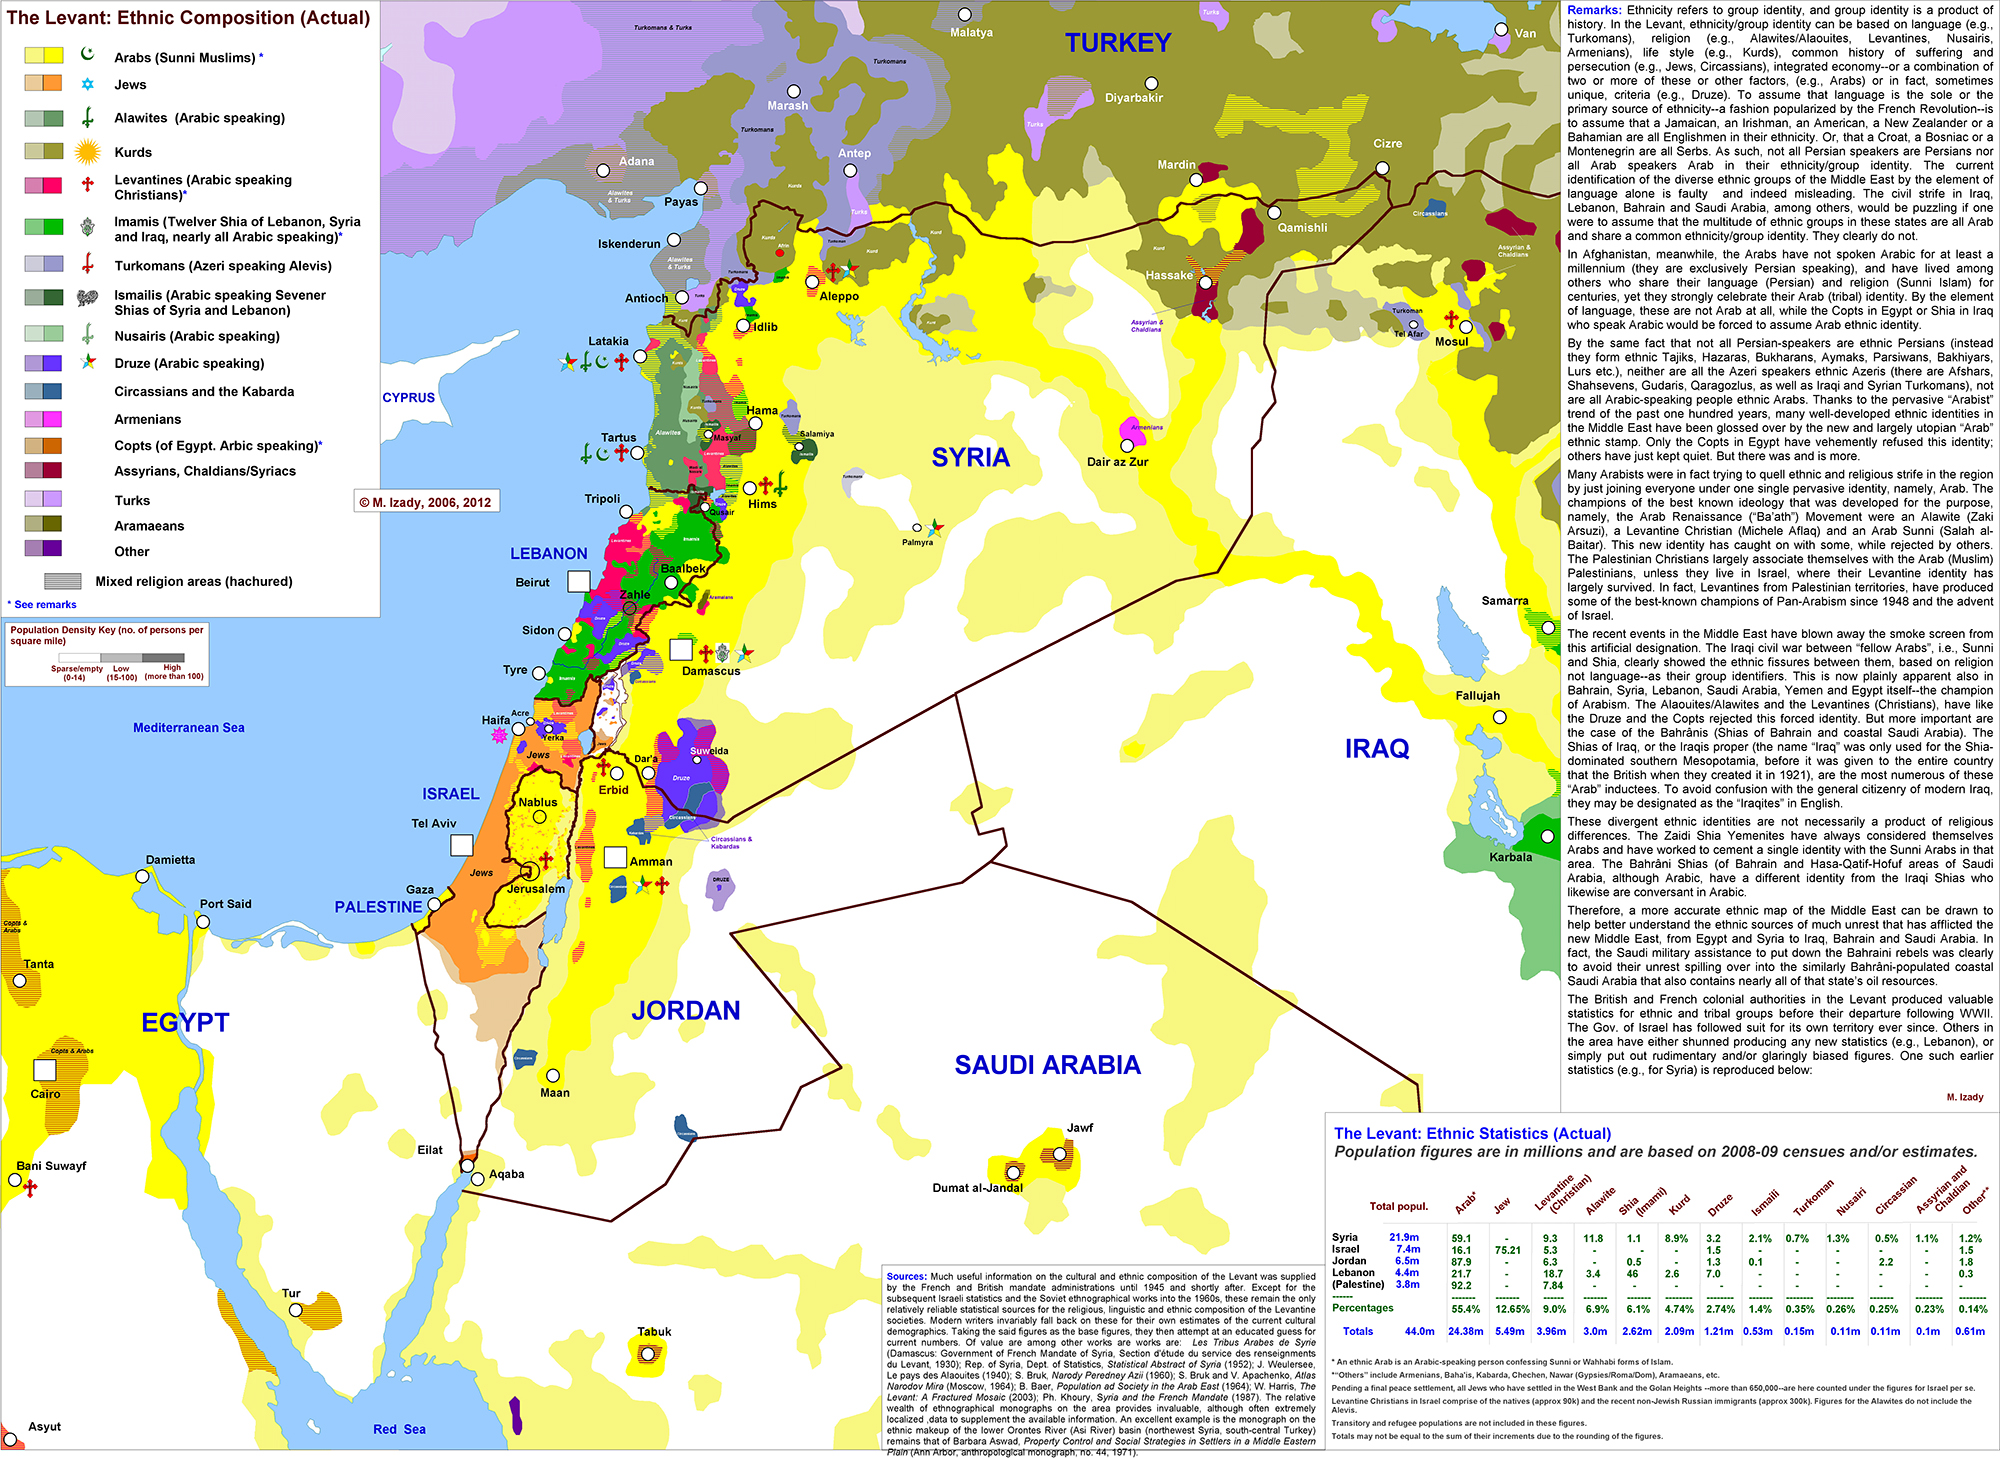 The Levant - Ethnic Composition